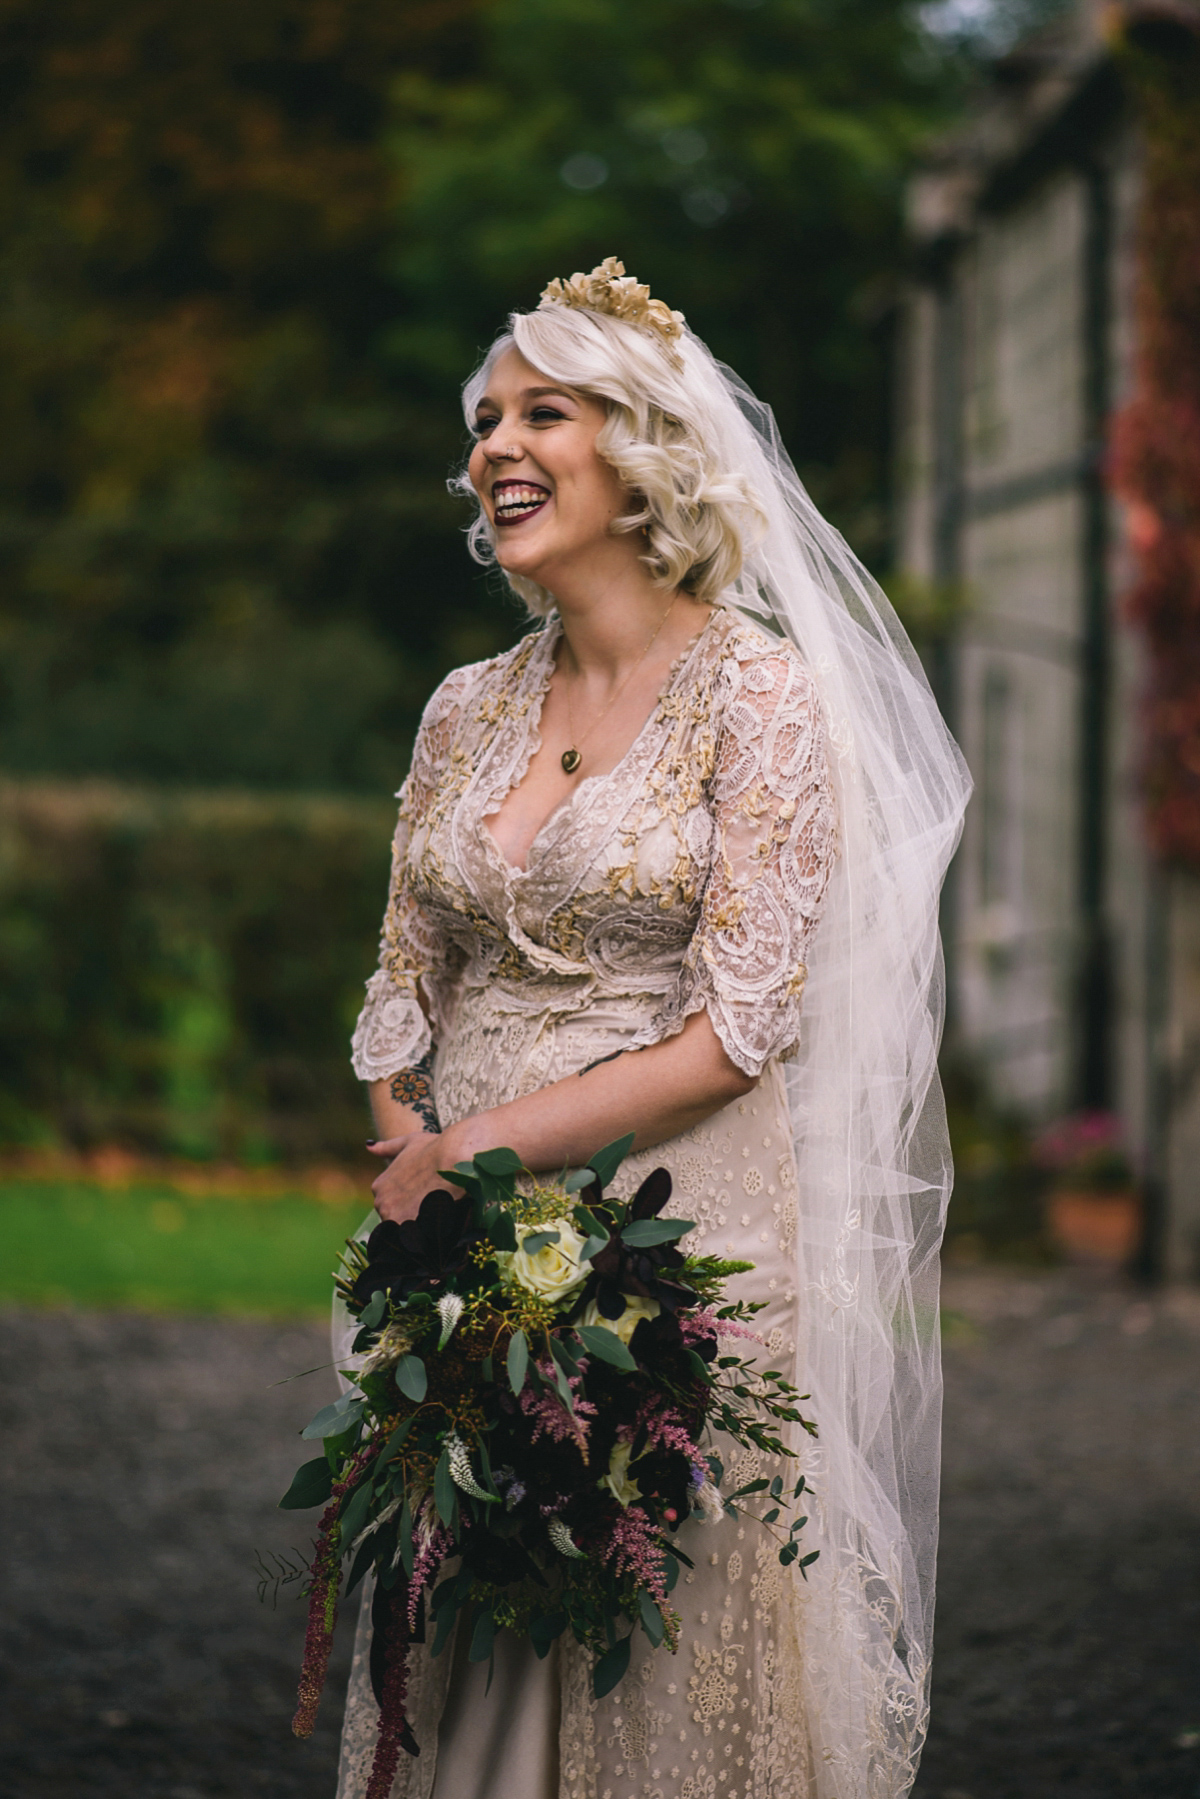 An Antique Lace Dress for a Tinder Couple and Their Romantic Autumn Wedding (Weddings )